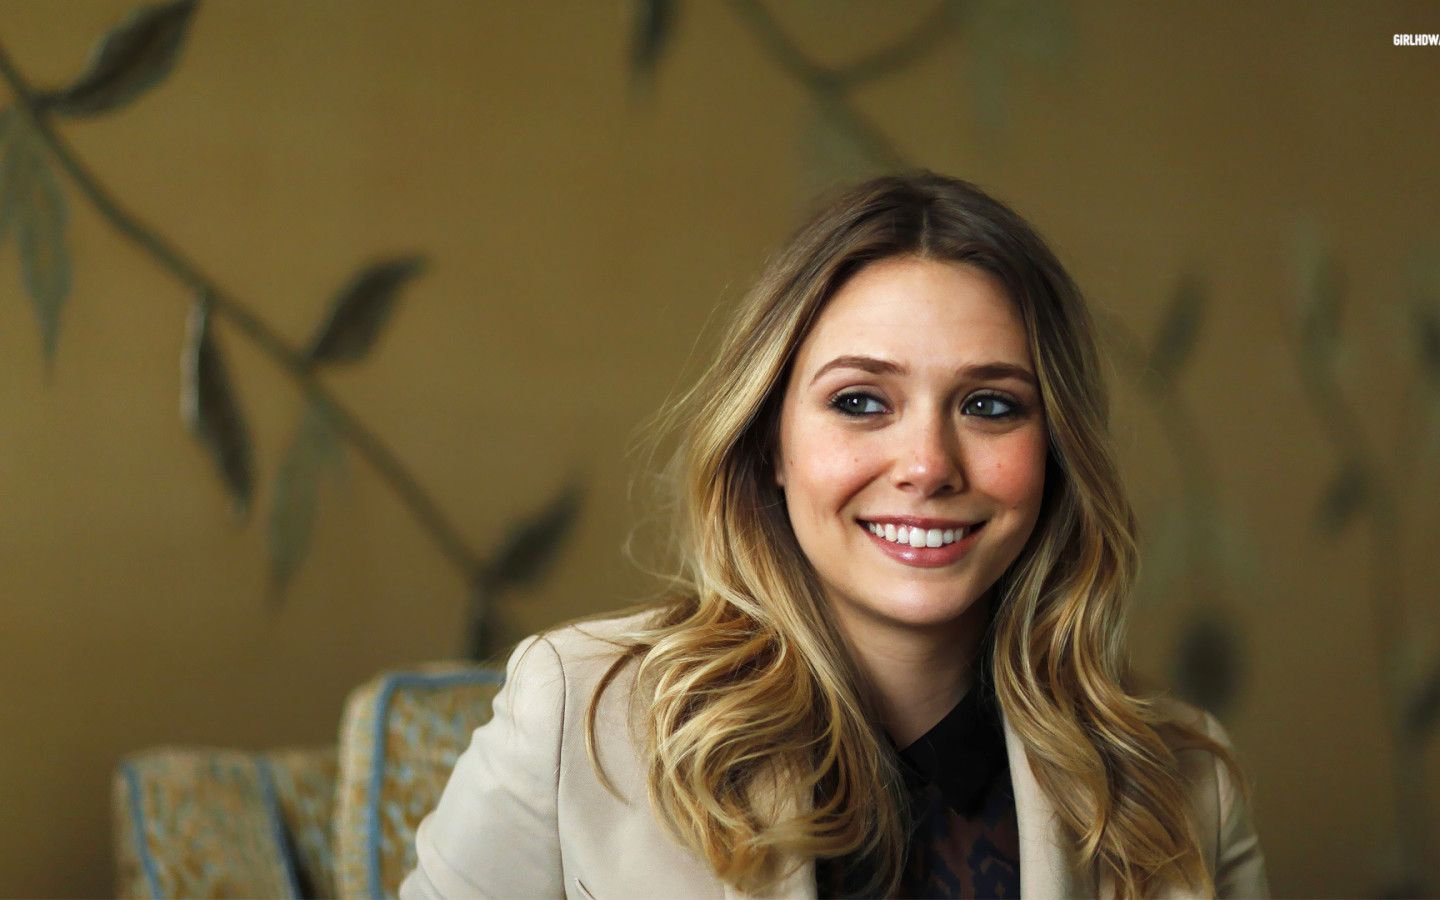 Elizabeth Olsen HD Wallpaper 2083 1440x900